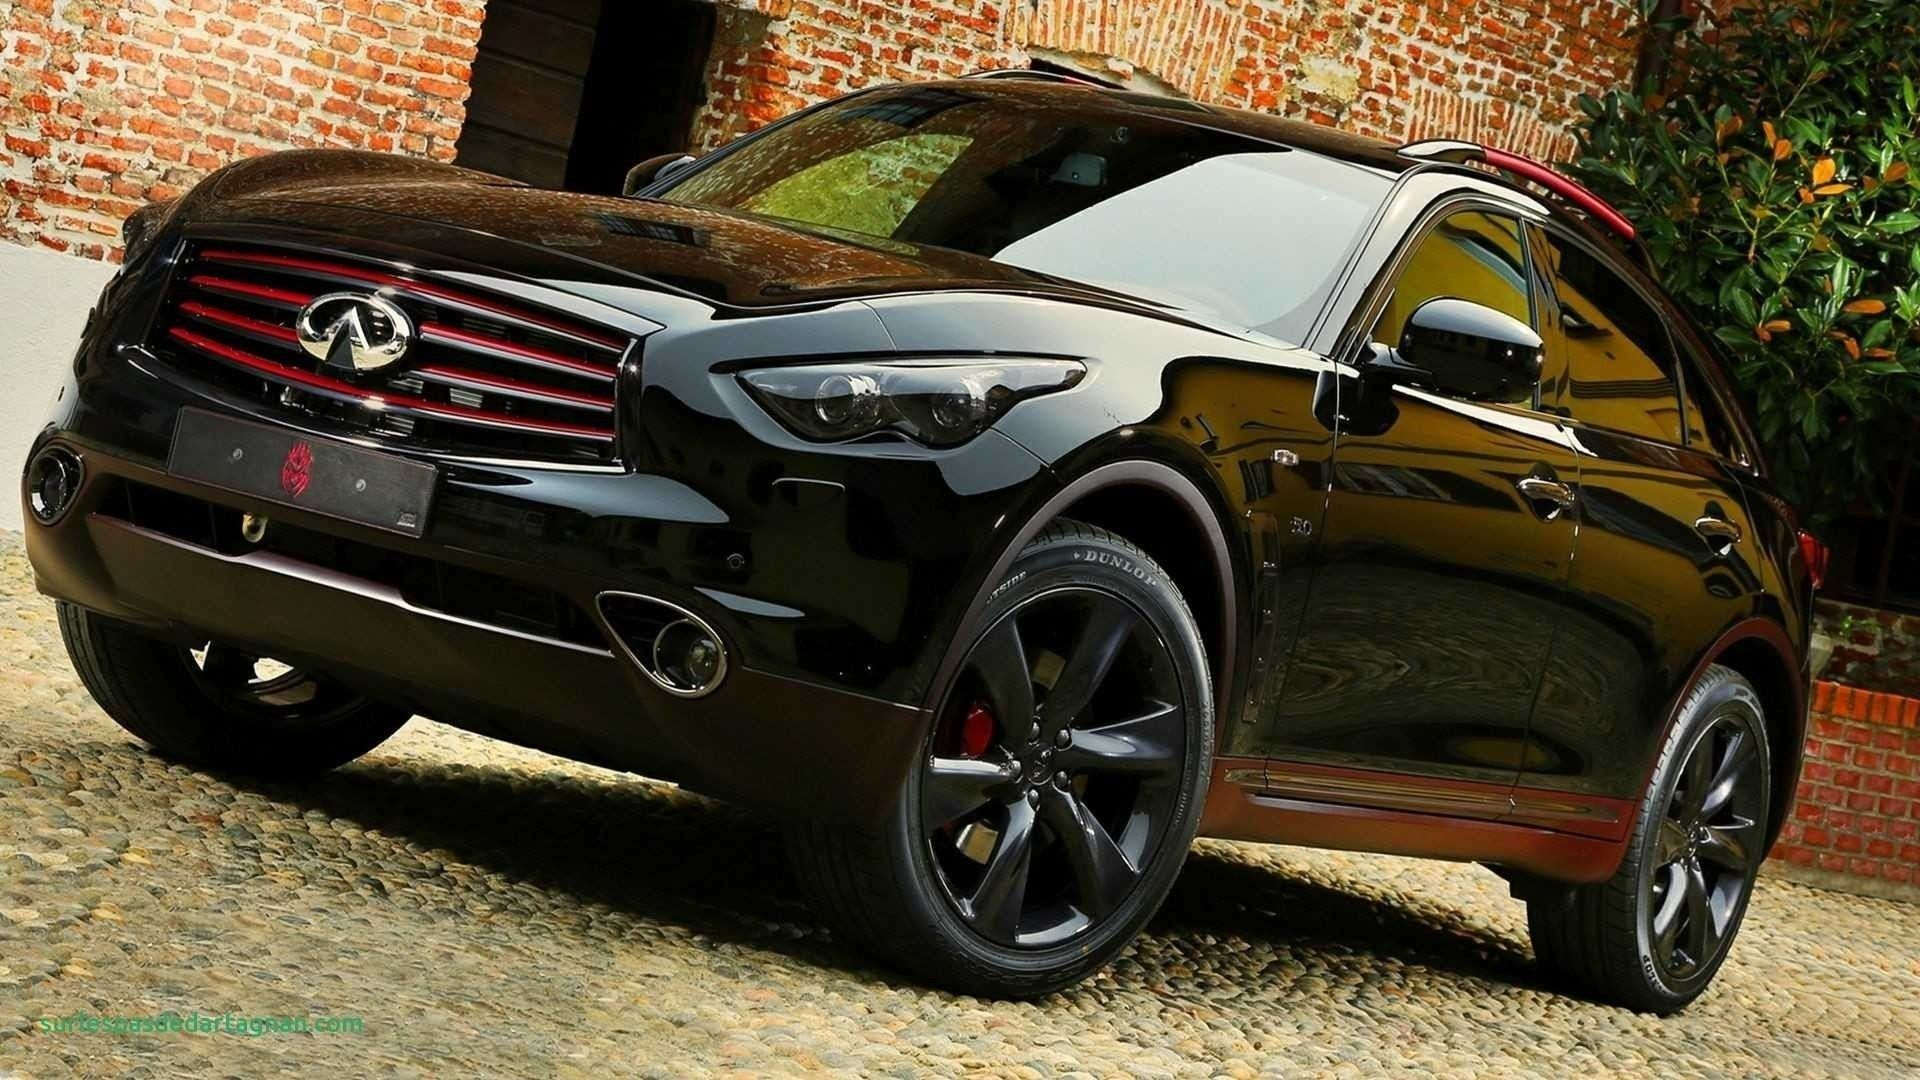 What Will 2019 Infiniti Qx70 Price Look Likecars Redesign Gallery Cars Redesign Gallery Infiniti Car New Cars